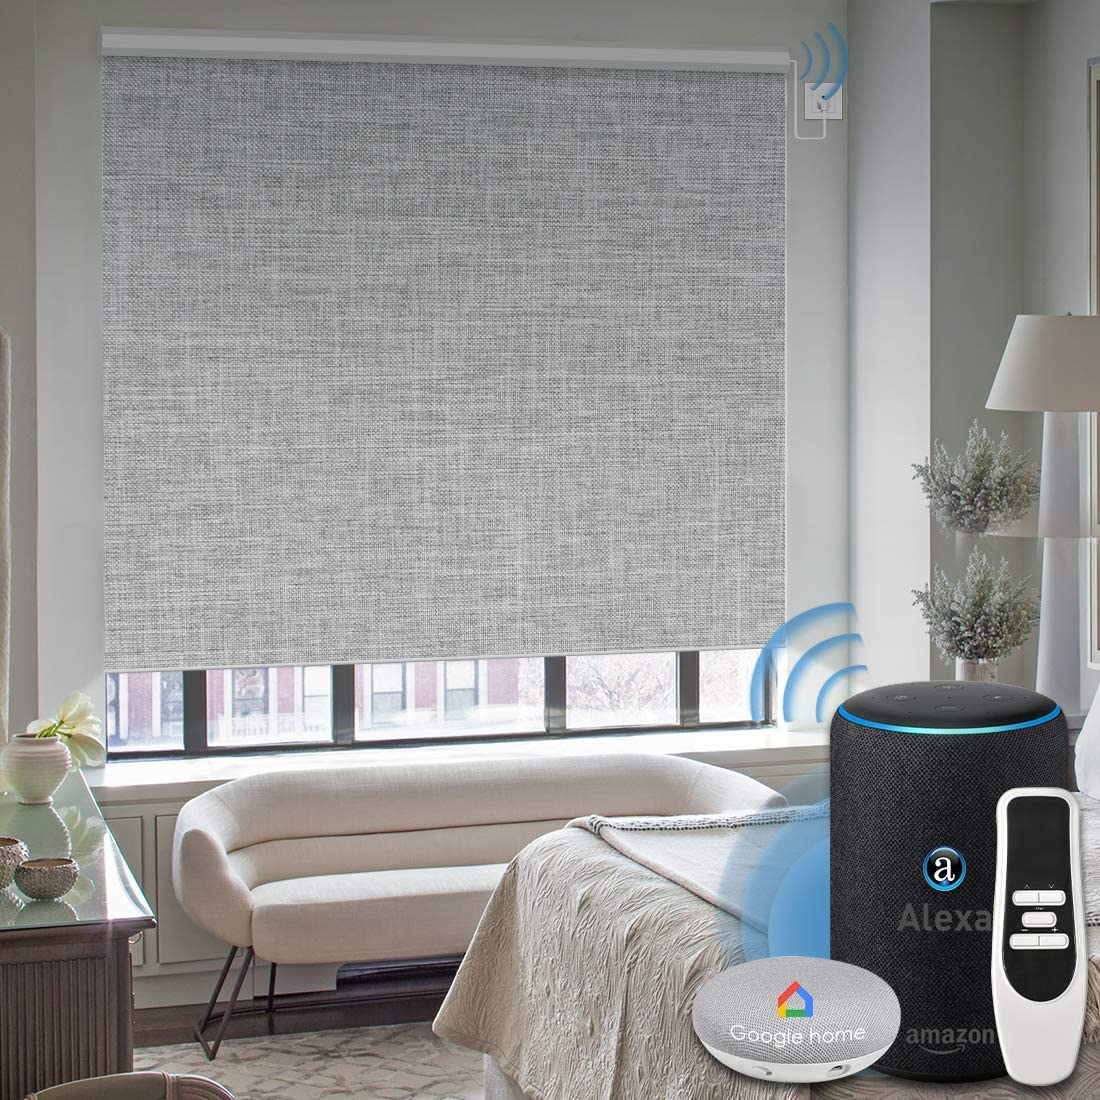 Graywind Motorized 100% Blackout Roller Shade with Alexa Google Smart Home Control Build-in Hardwired Window Shades Thermal Insulated Window Blinds, Customized Size (Light Gray)